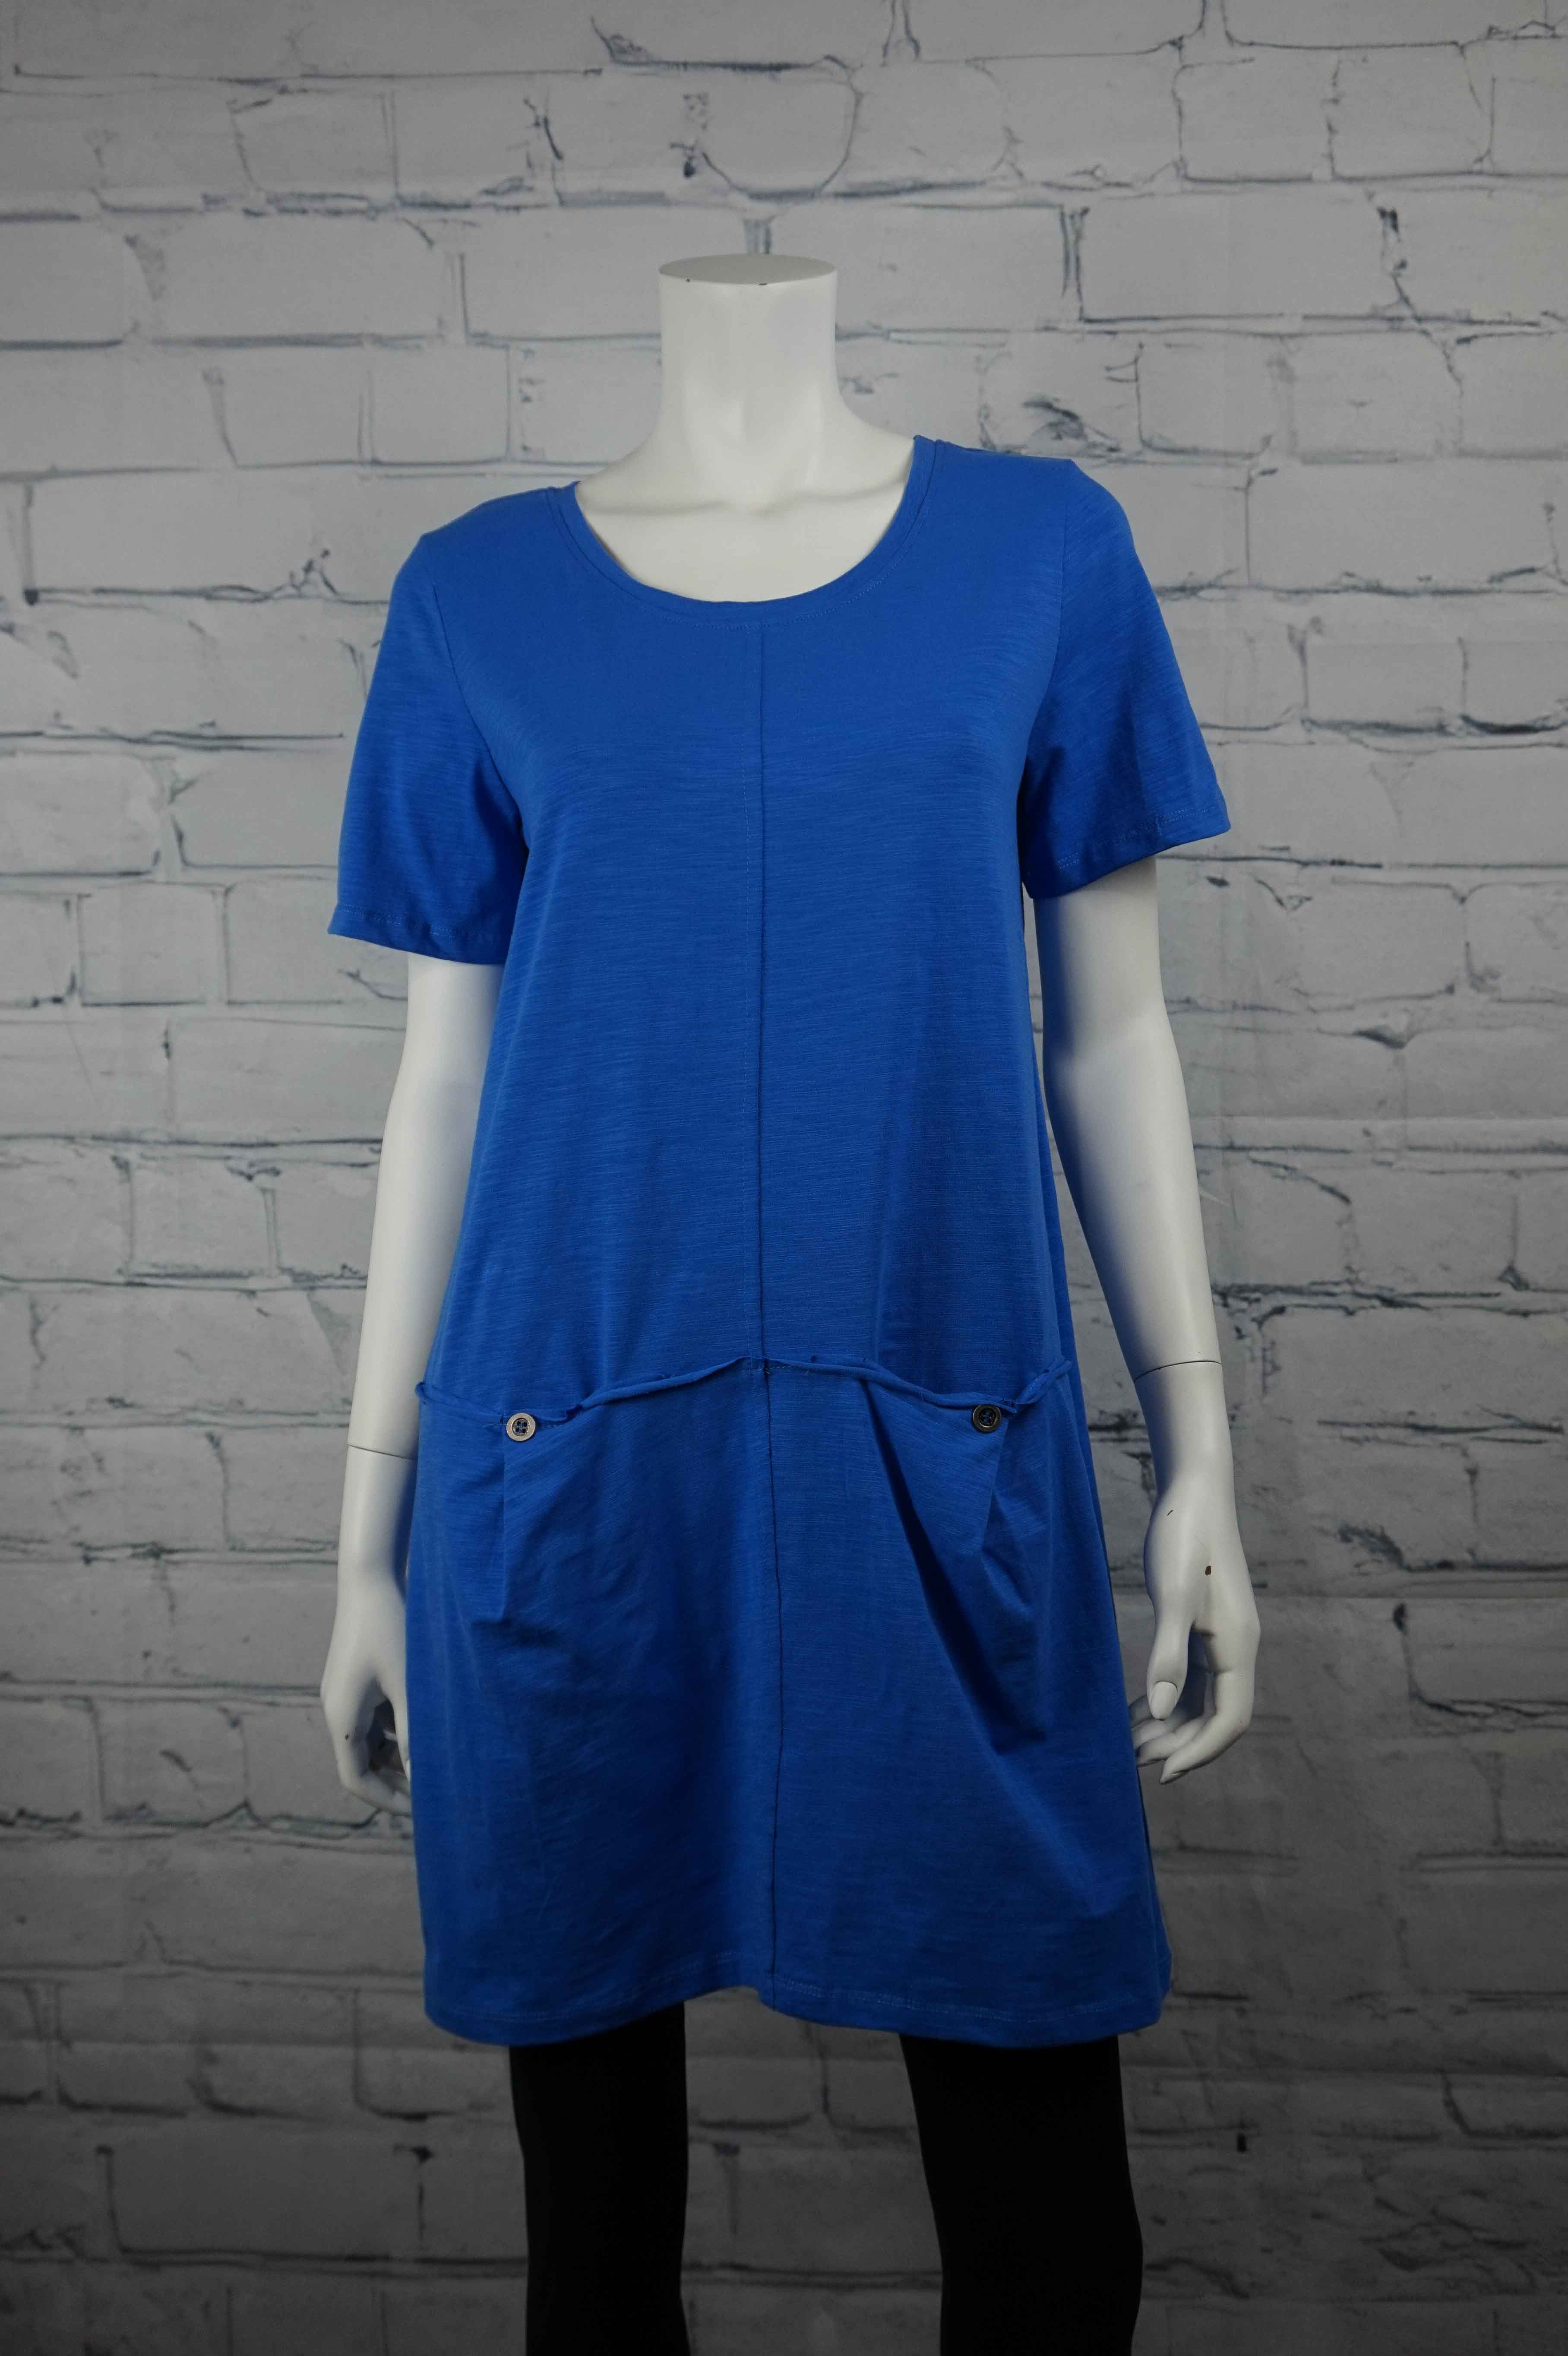 Petticoat Lane Deep Pocket Tunic/Dress - Royal